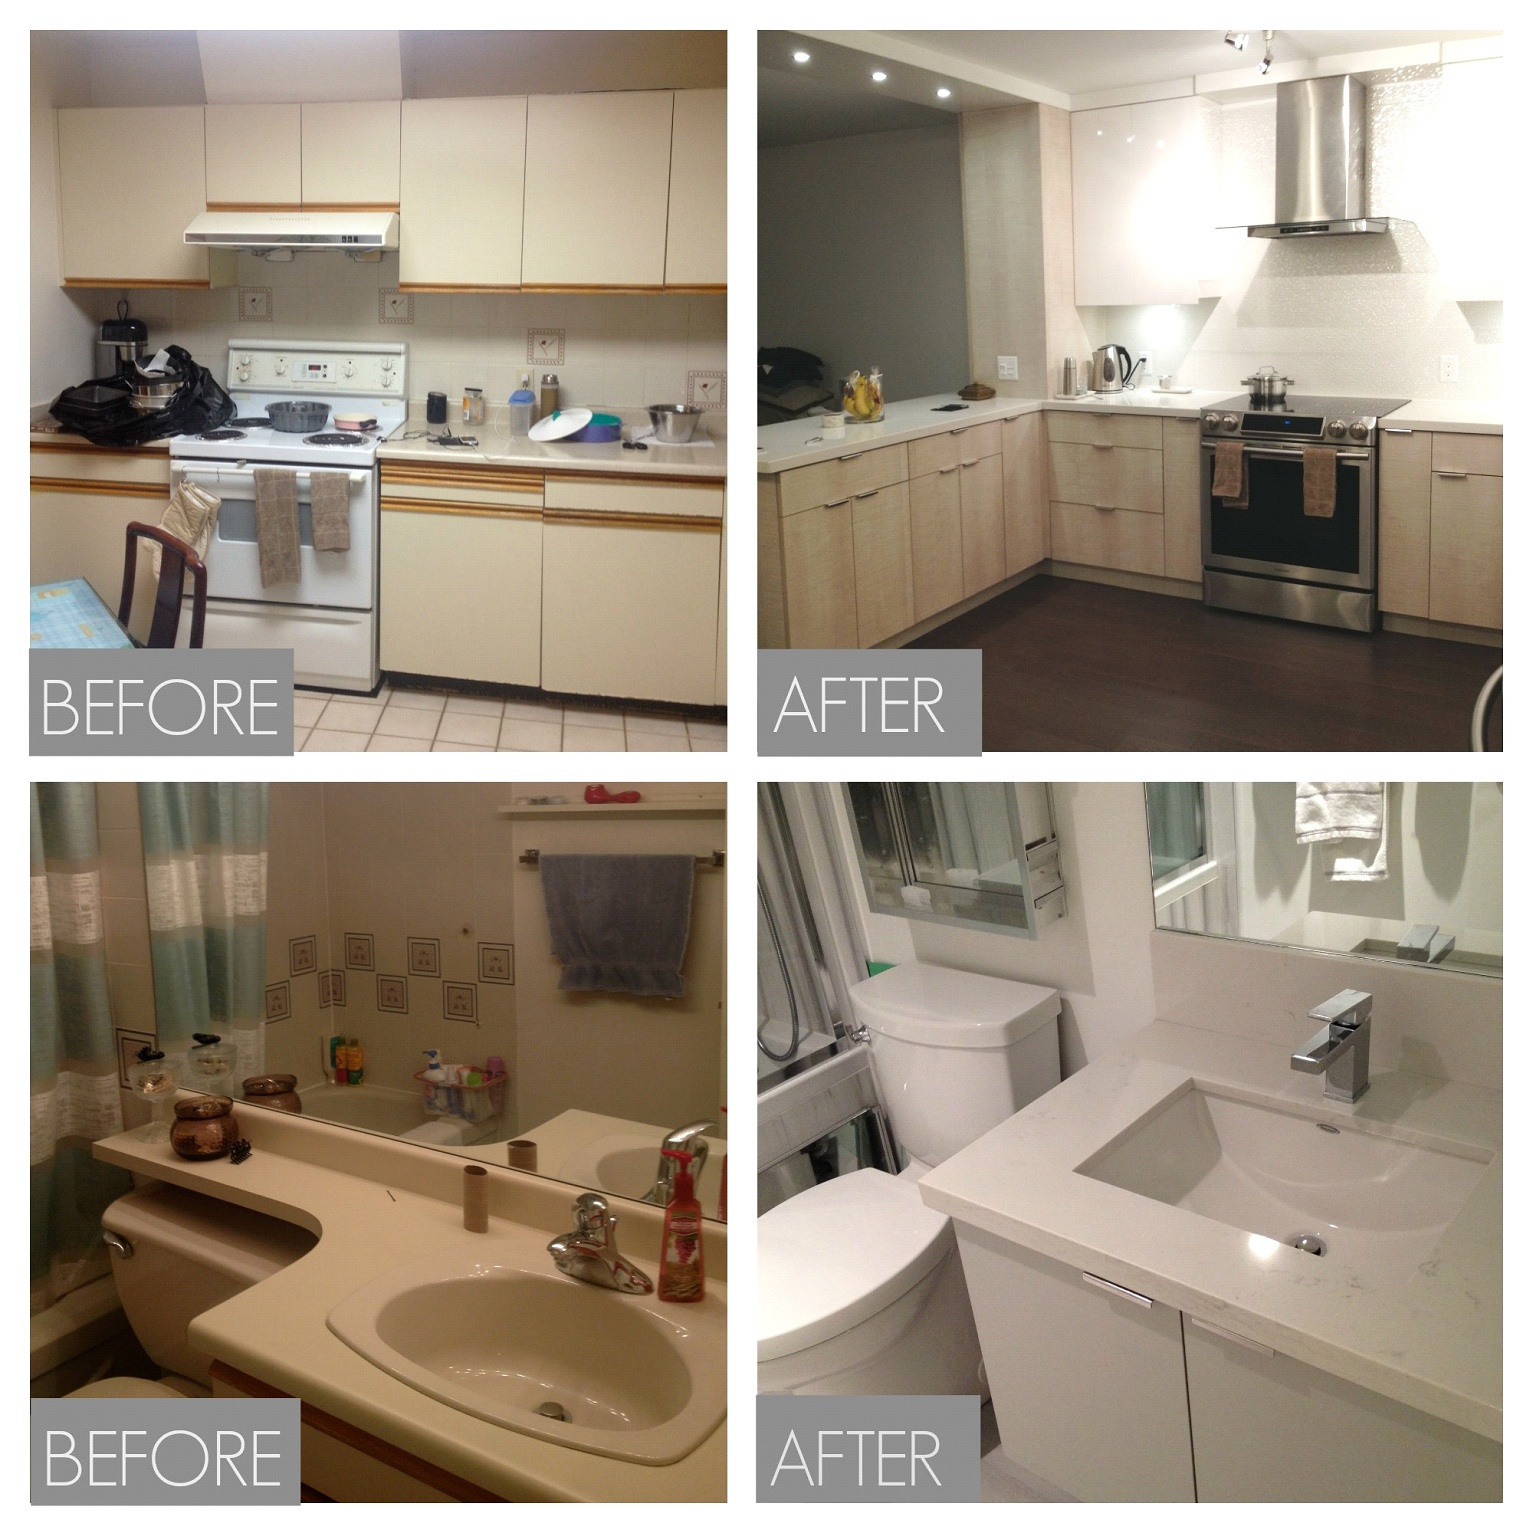 Kitchen Staging Before And After: Not Finding The Perfect House? Why Not Buy The Worst House